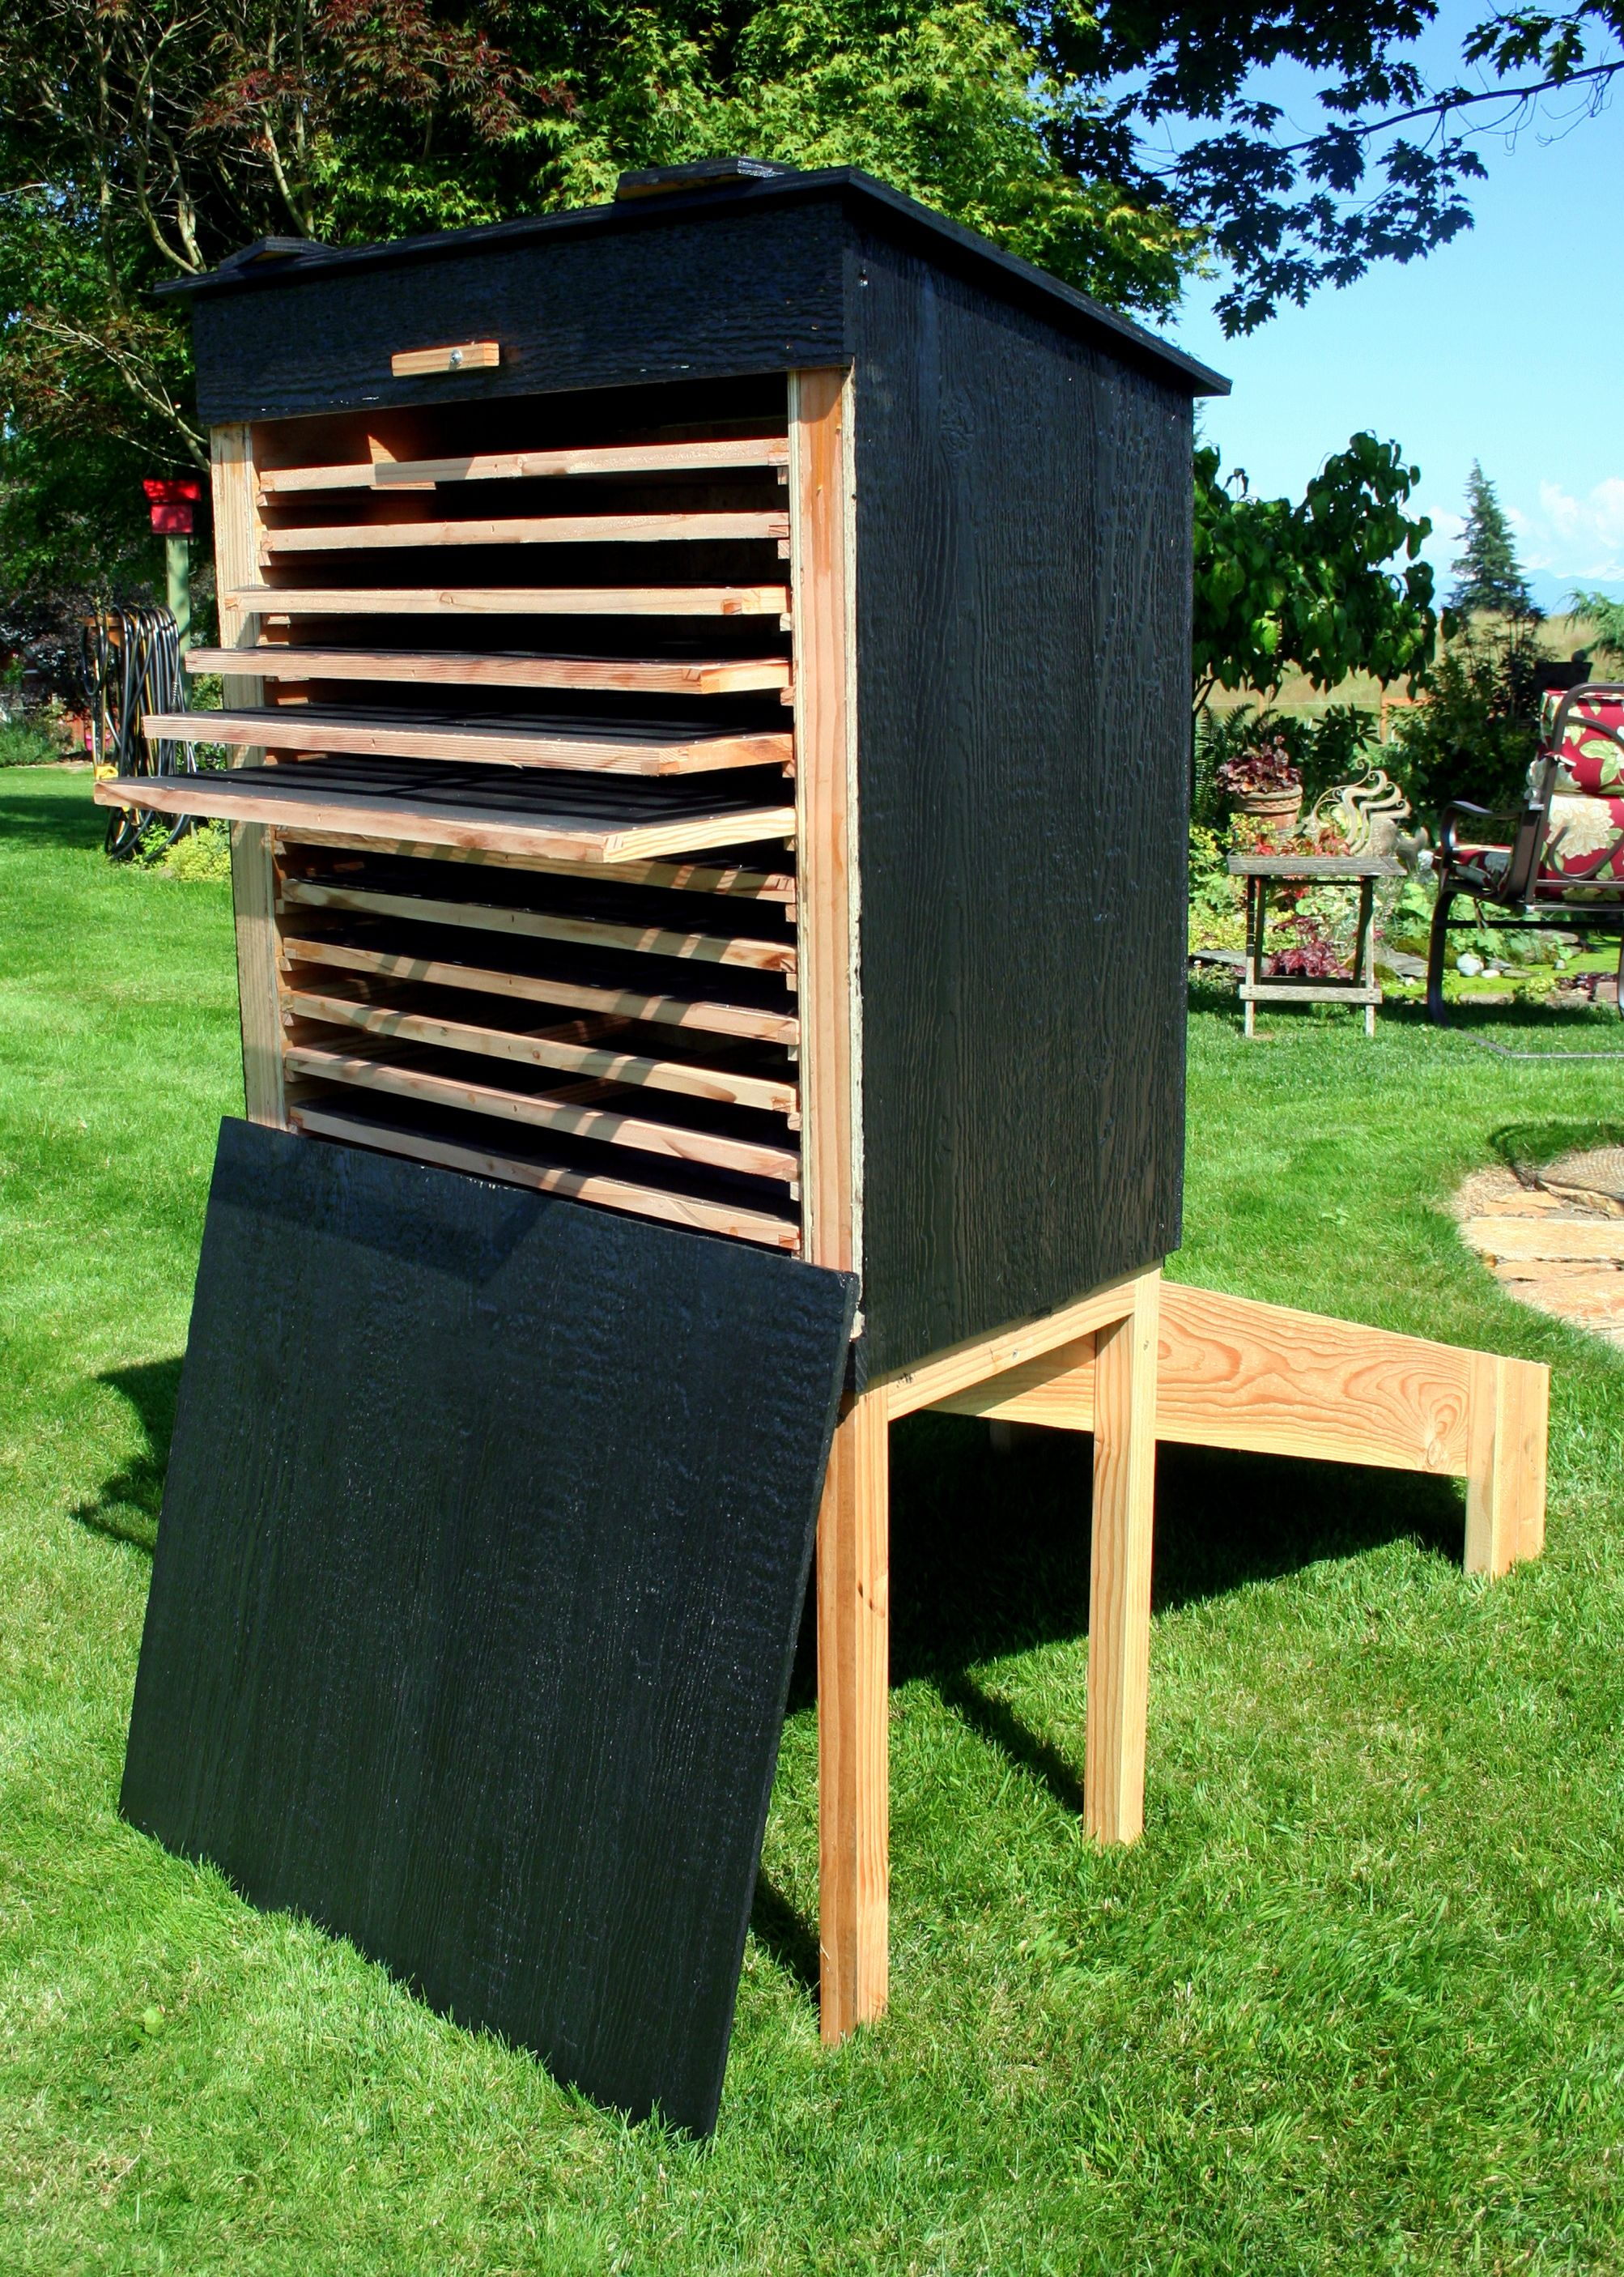 Küchendesign diy how you can make your own homemade or diy solar food dryer hereure